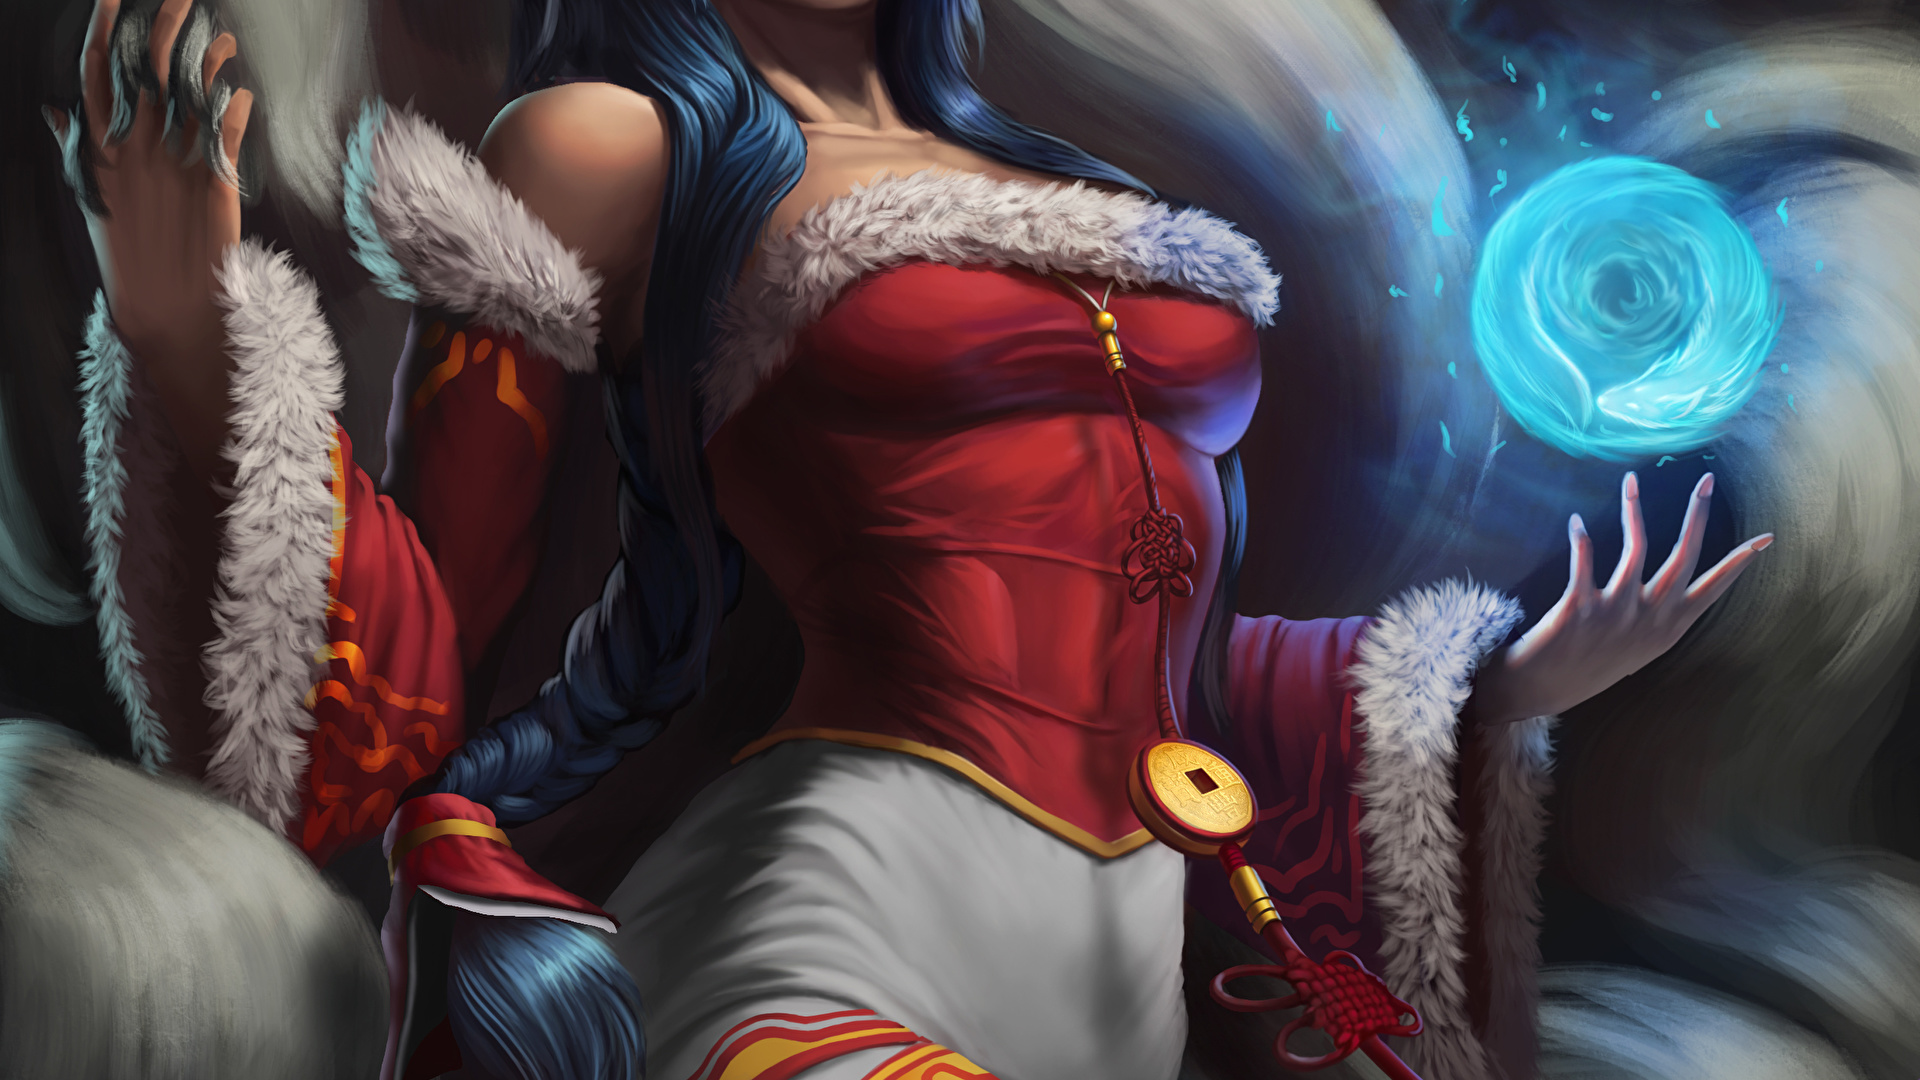 Desktop Wallpapers Ahri League Of Legends Sorcery Female 1920x1080